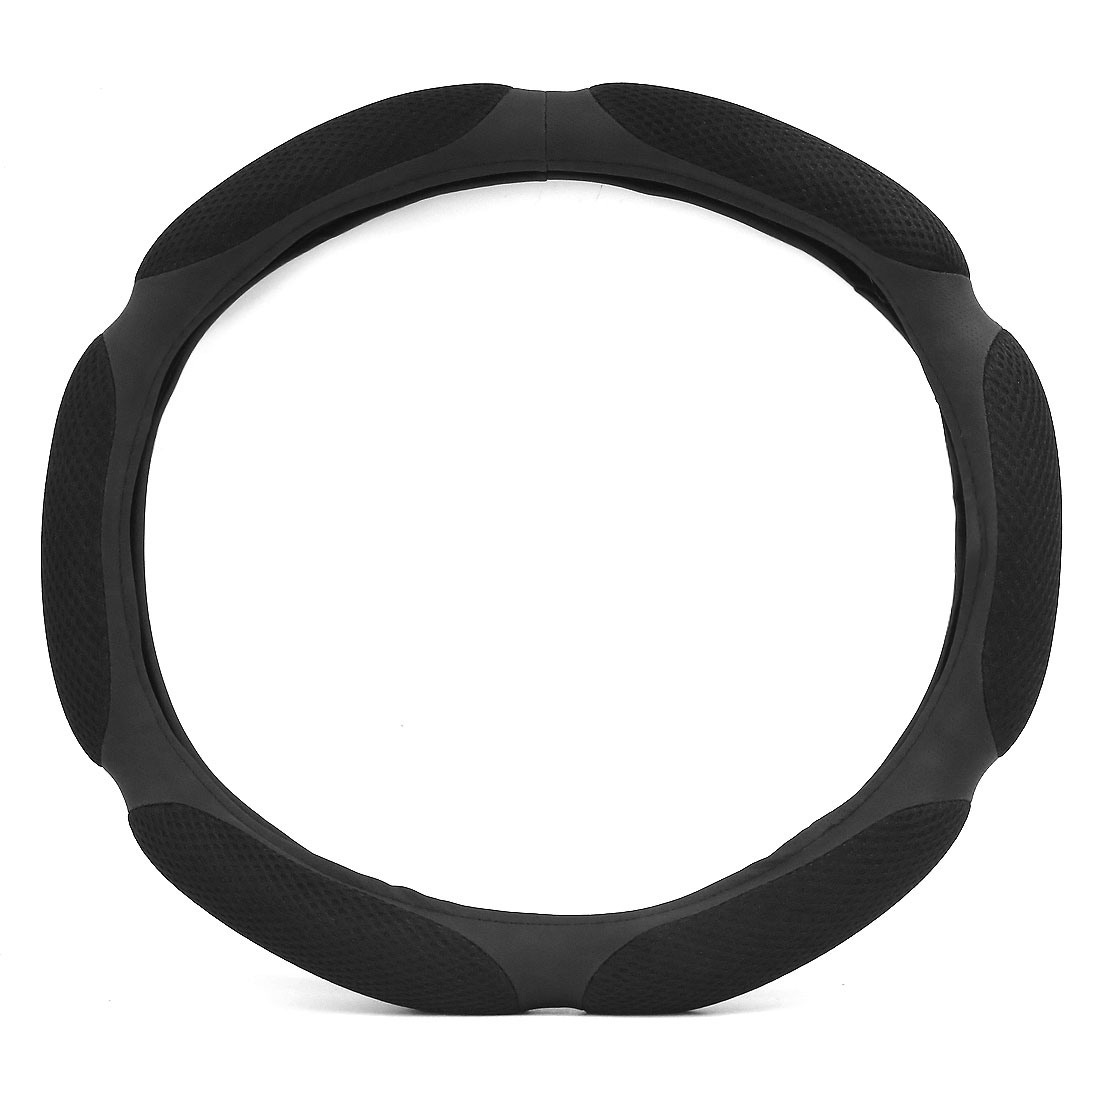 40cm Outer Dia Odorless Skidproof Steering Wheel Cover Sleeve Protector for Car